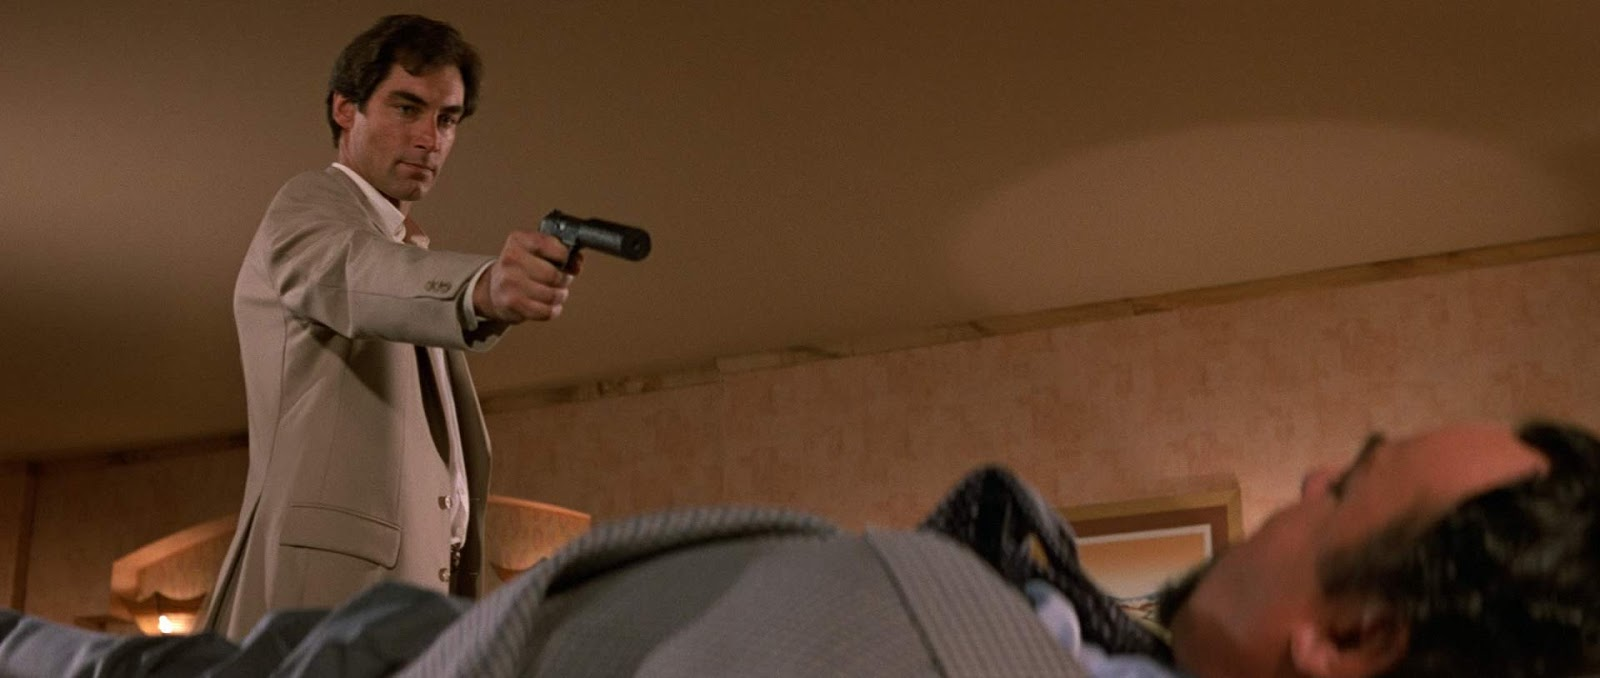 Timothy Dalton, The Livings Daylights (1987)